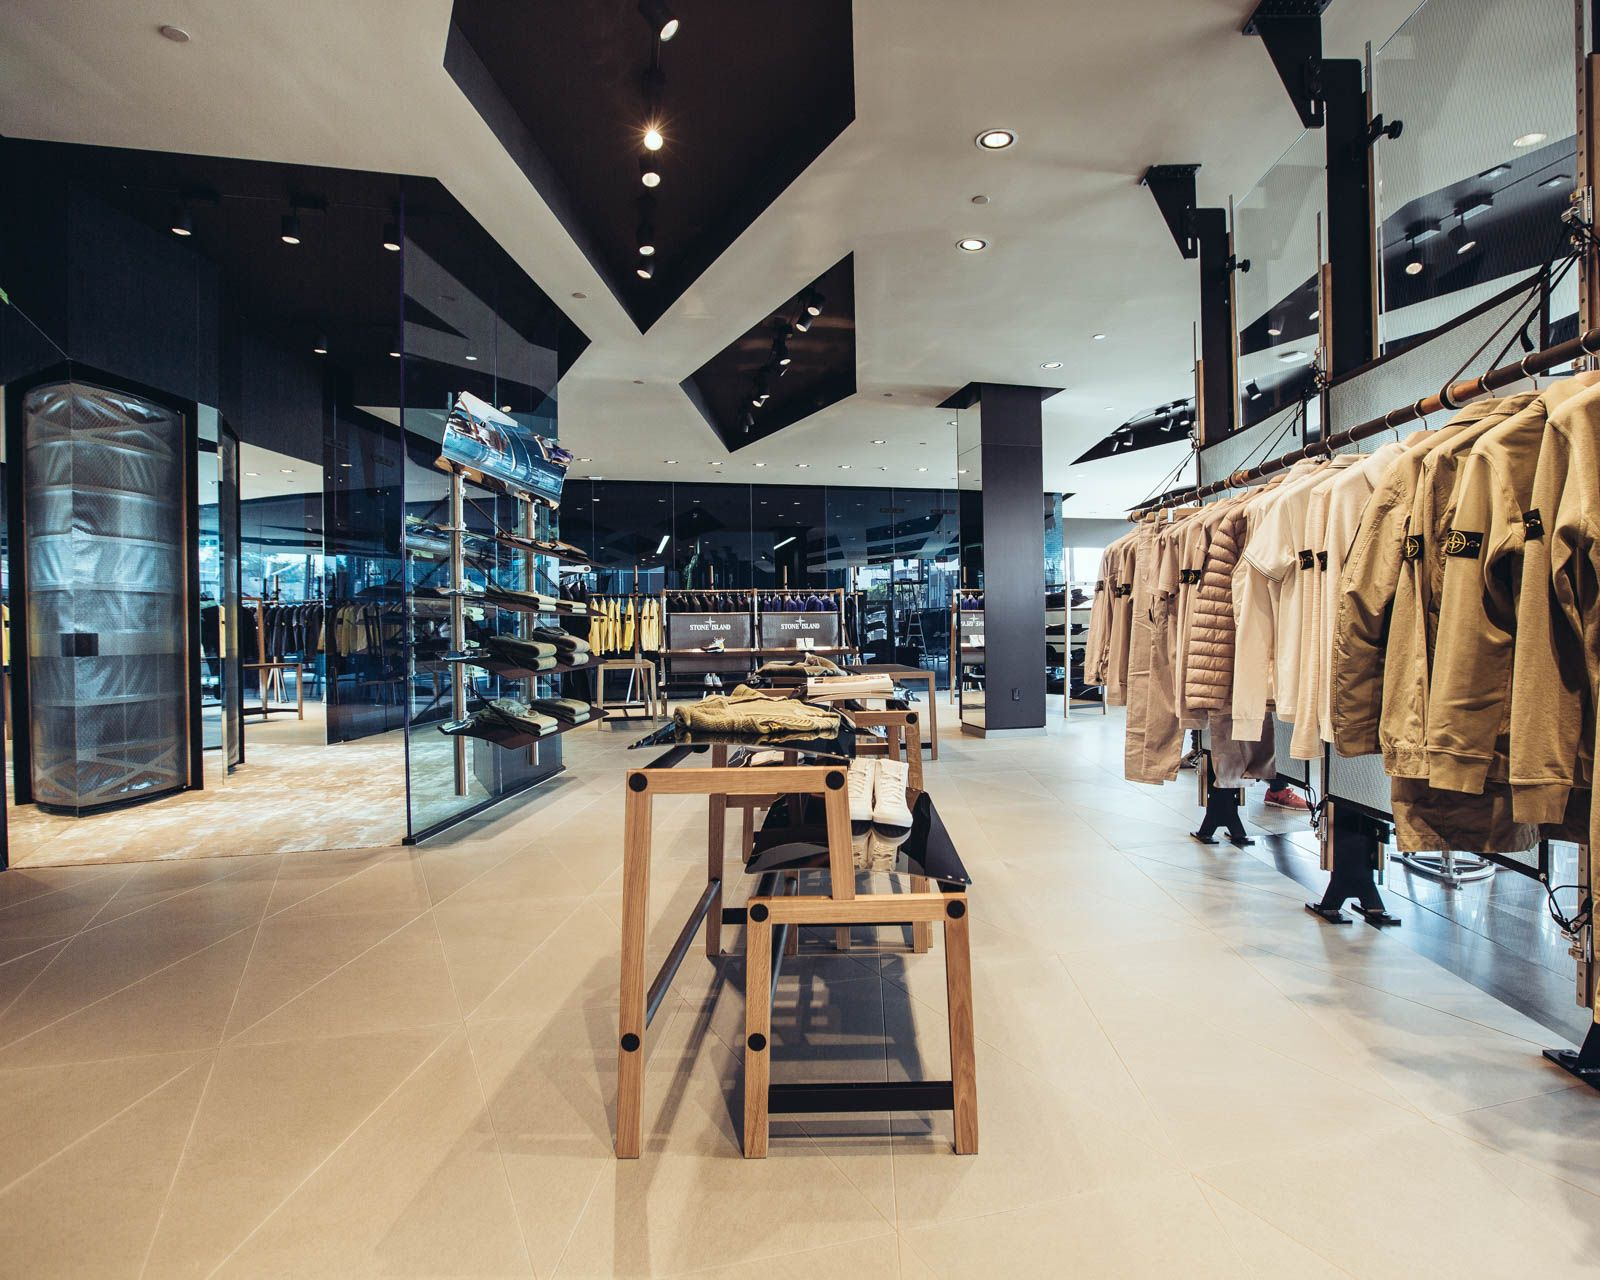 THE NEW STONE ISLAND FLAGSHIP STORE IN LOS ANGELES 101 N ...